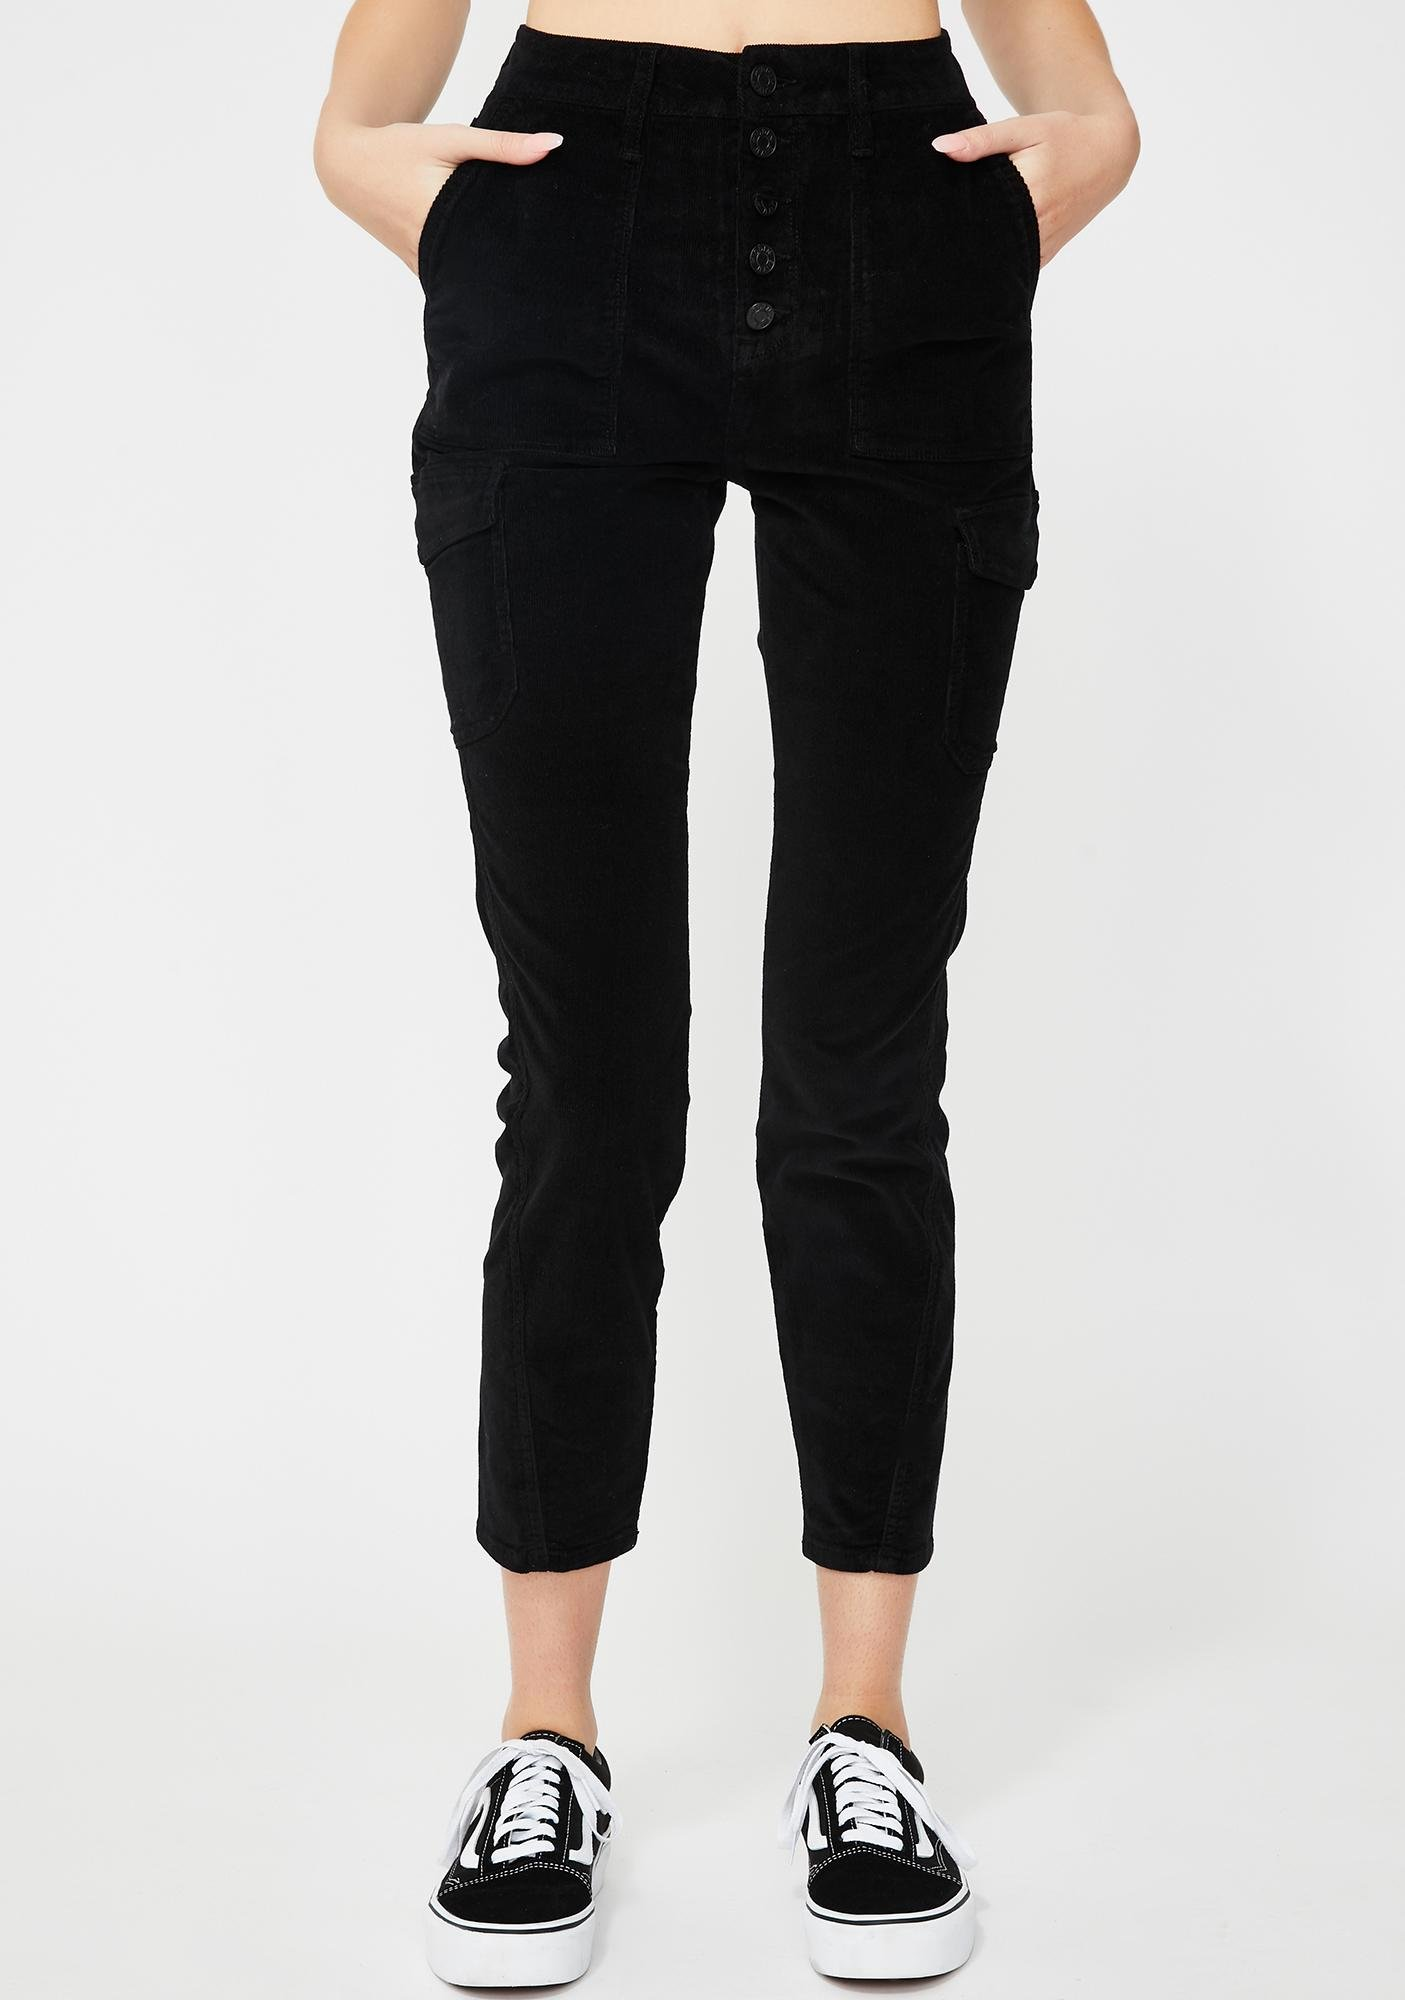 Hidden Denim Black Corduroy Skinny Jeans